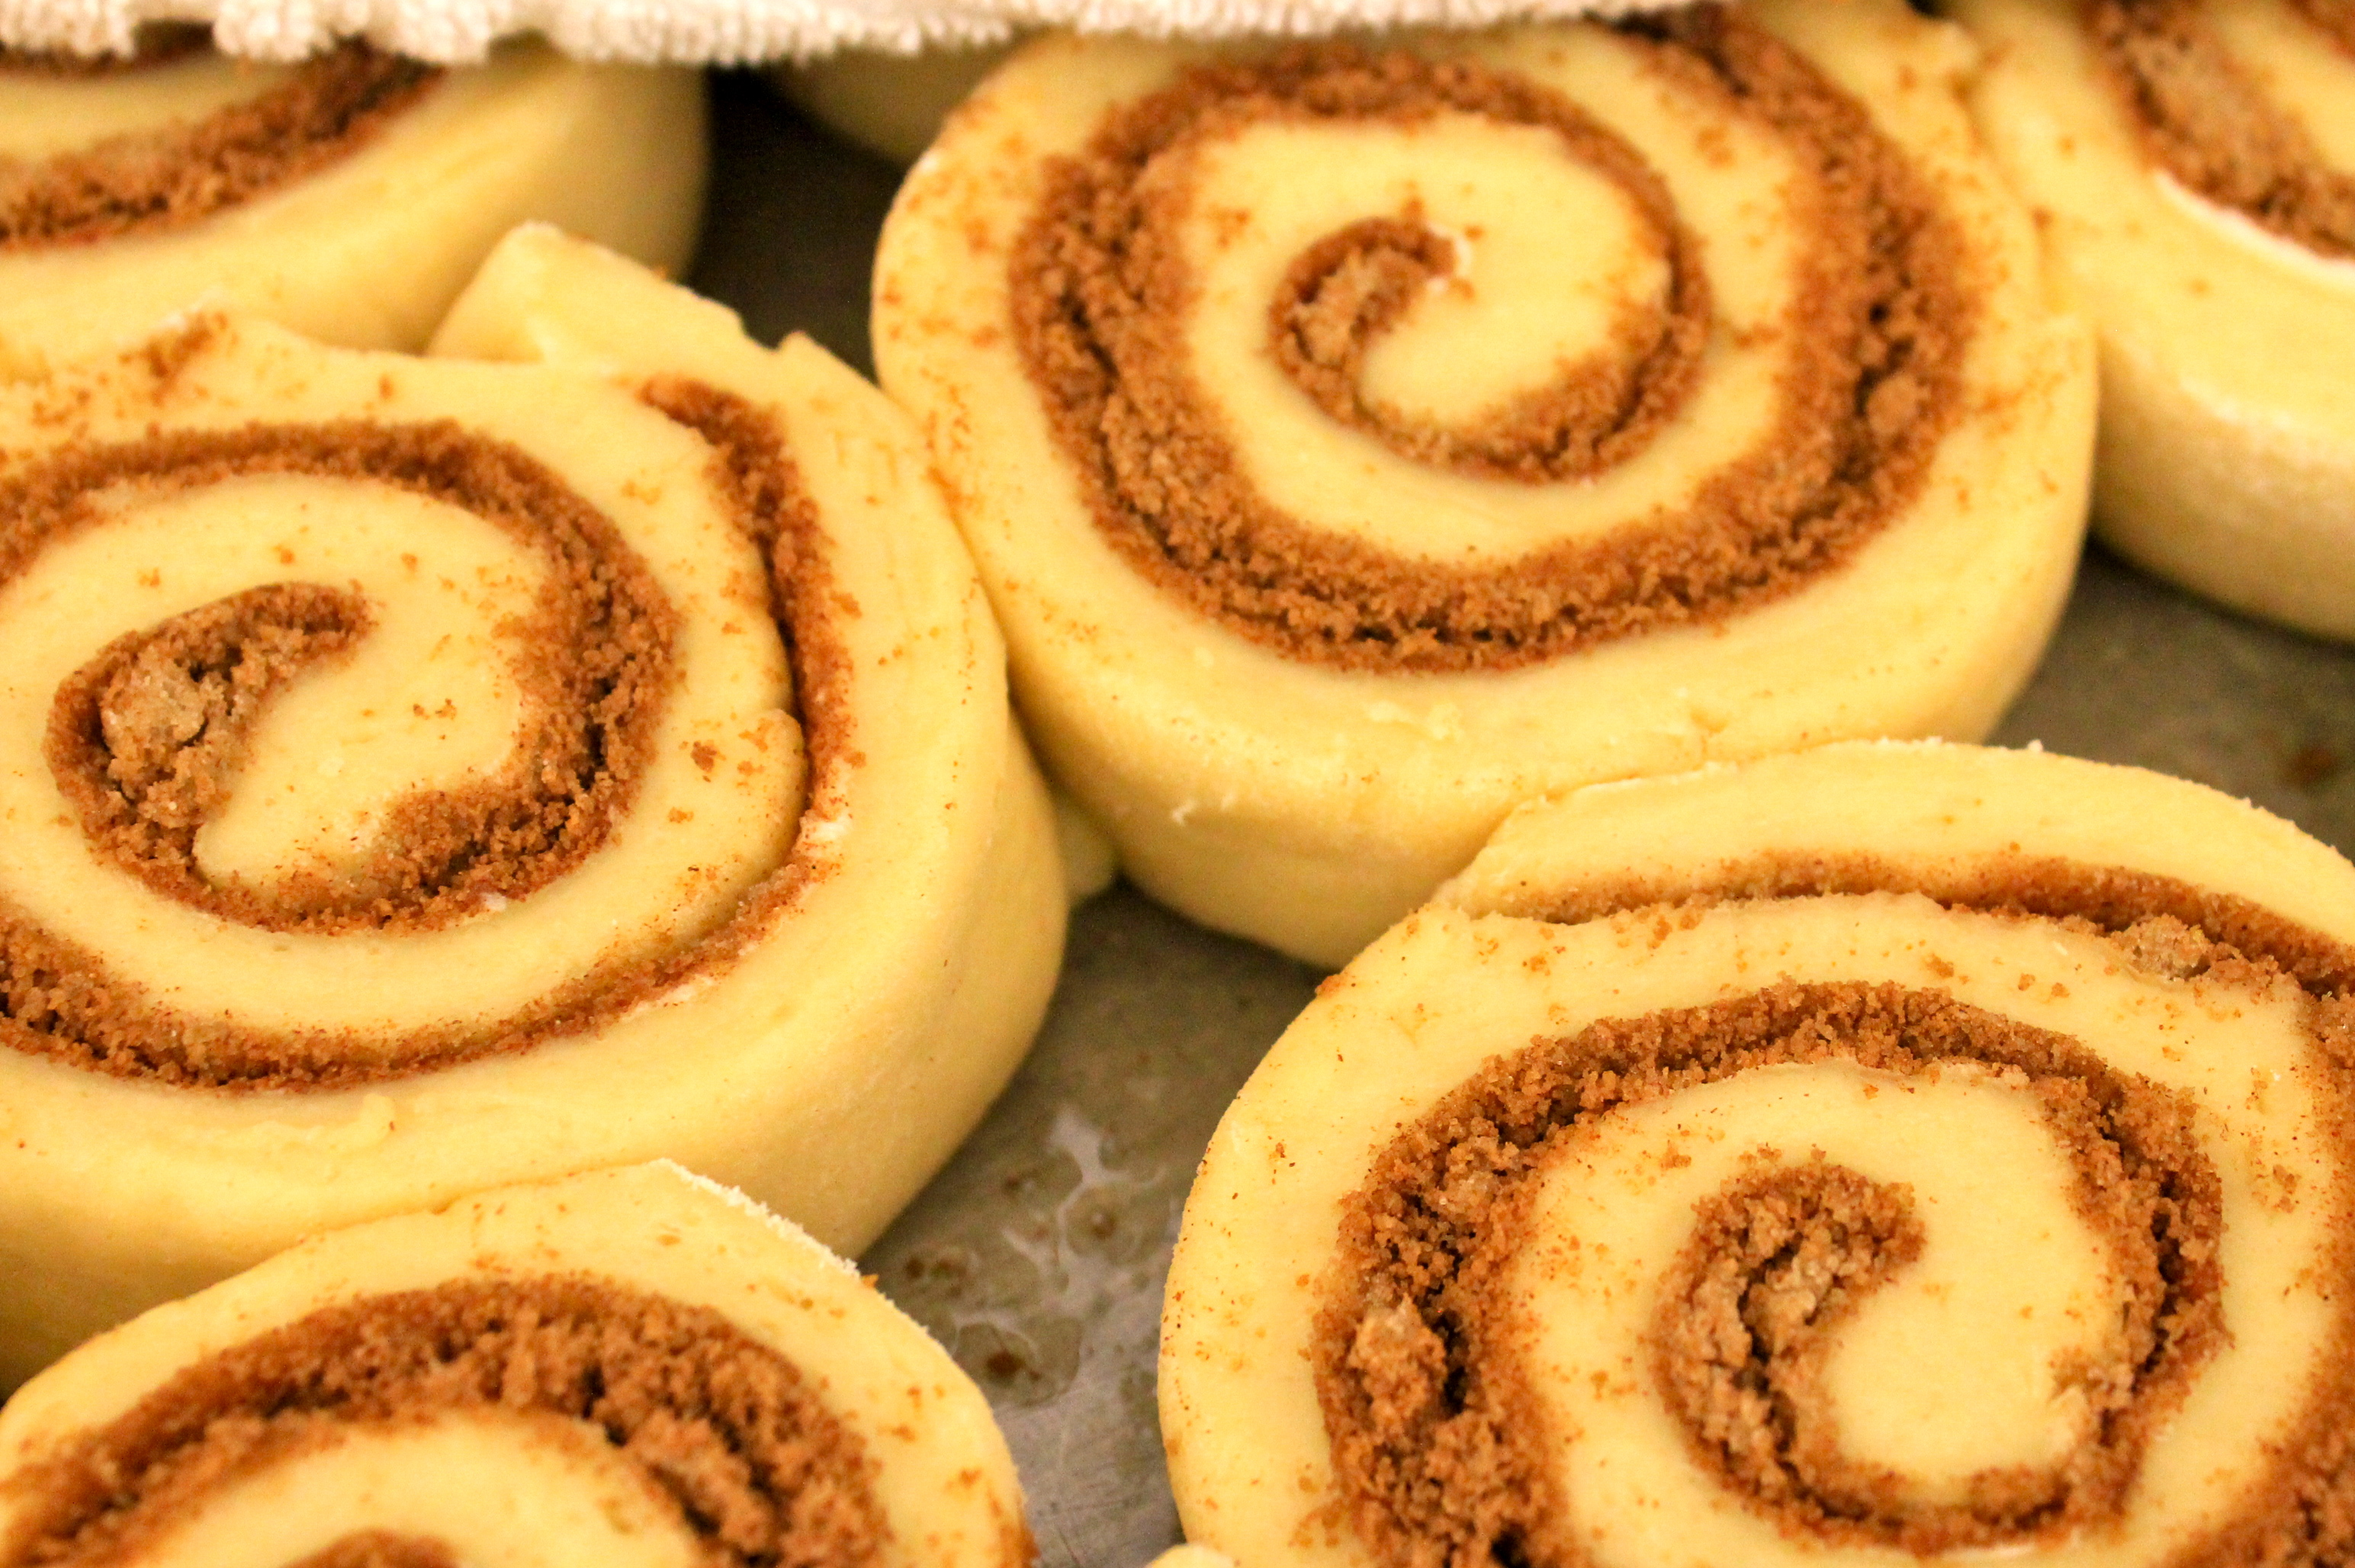 IMG 4249 - Cinnamon Rolls Worth Every Calorie